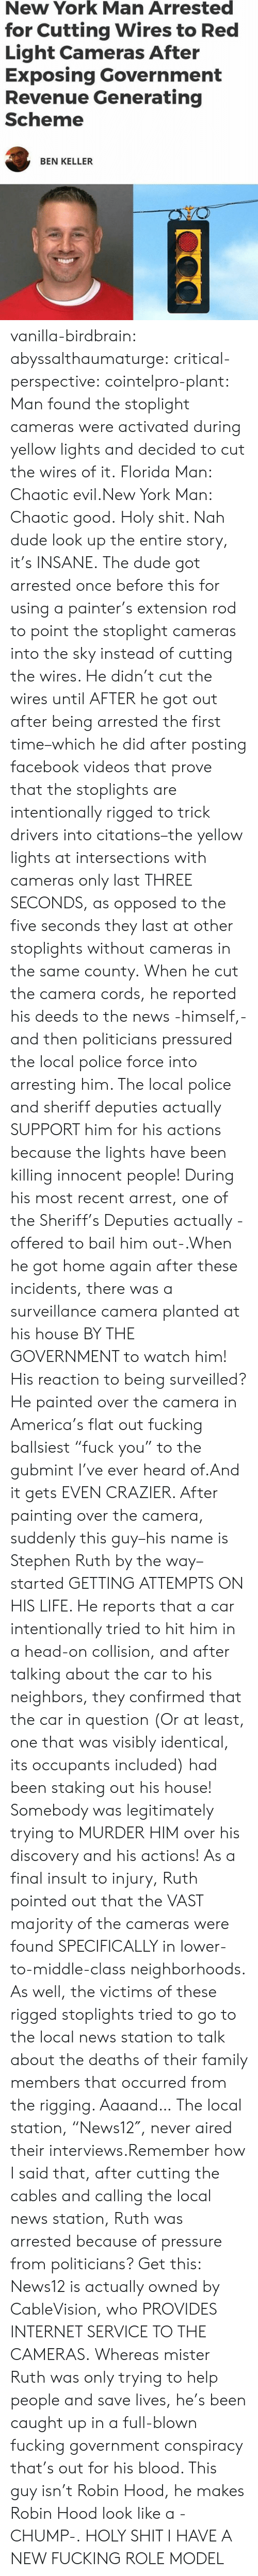 """America, Dude, and Facebook: New York Man Arrested  for Cutting Wires to Red  Light Cameras After  Exposing Government  Revenue Generating  Scheme  BEN KELLER vanilla-birdbrain:  abyssalthaumaturge:  critical-perspective:  cointelpro-plant: Man found the stoplight cameras were activated during yellow lights and decided to cut the wires of it. Florida Man: Chaotic evil.New York Man: Chaotic good.  Holy shit. Nah dude look up the entire story, it's INSANE. The dude got arrested once before this for using a painter's extension rod to point the stoplight cameras into the sky instead of cutting the wires. He didn't cut the wires until AFTER he got out after being arrested the first time–which he did after posting facebook videos that prove that the stoplights are intentionally rigged to trick drivers into citations–the yellow lights at intersections with cameras only last THREE SECONDS, as opposed to the five seconds they last at other stoplights without cameras in the same county. When he cut the camera cords, he reported his deeds to the news -himself,- and then politicians pressured the local police force into arresting him. The local police and sheriff deputies actually SUPPORT him for his actions because the lights have been killing innocent people! During his most recent arrest, one of the Sheriff's Deputies actually -offered to bail him out-.When he got home again after these incidents, there was a surveillance camera planted at his house BY THE GOVERNMENT to watch him! His reaction to being surveilled? He painted over the camera in America's flat out fucking ballsiest""""fuck you"""" to the gubmint I've ever heard of.And it gets EVEN CRAZIER. After painting over the camera, suddenly this guy–his name is Stephen Ruth by the way–started GETTING ATTEMPTS ON HIS LIFE. He reports that a car intentionally tried to hit him in a head-on collision, and after talking about the car to his neighbors, they confirmed that the car in question (Or at least, one that was visibly identi"""